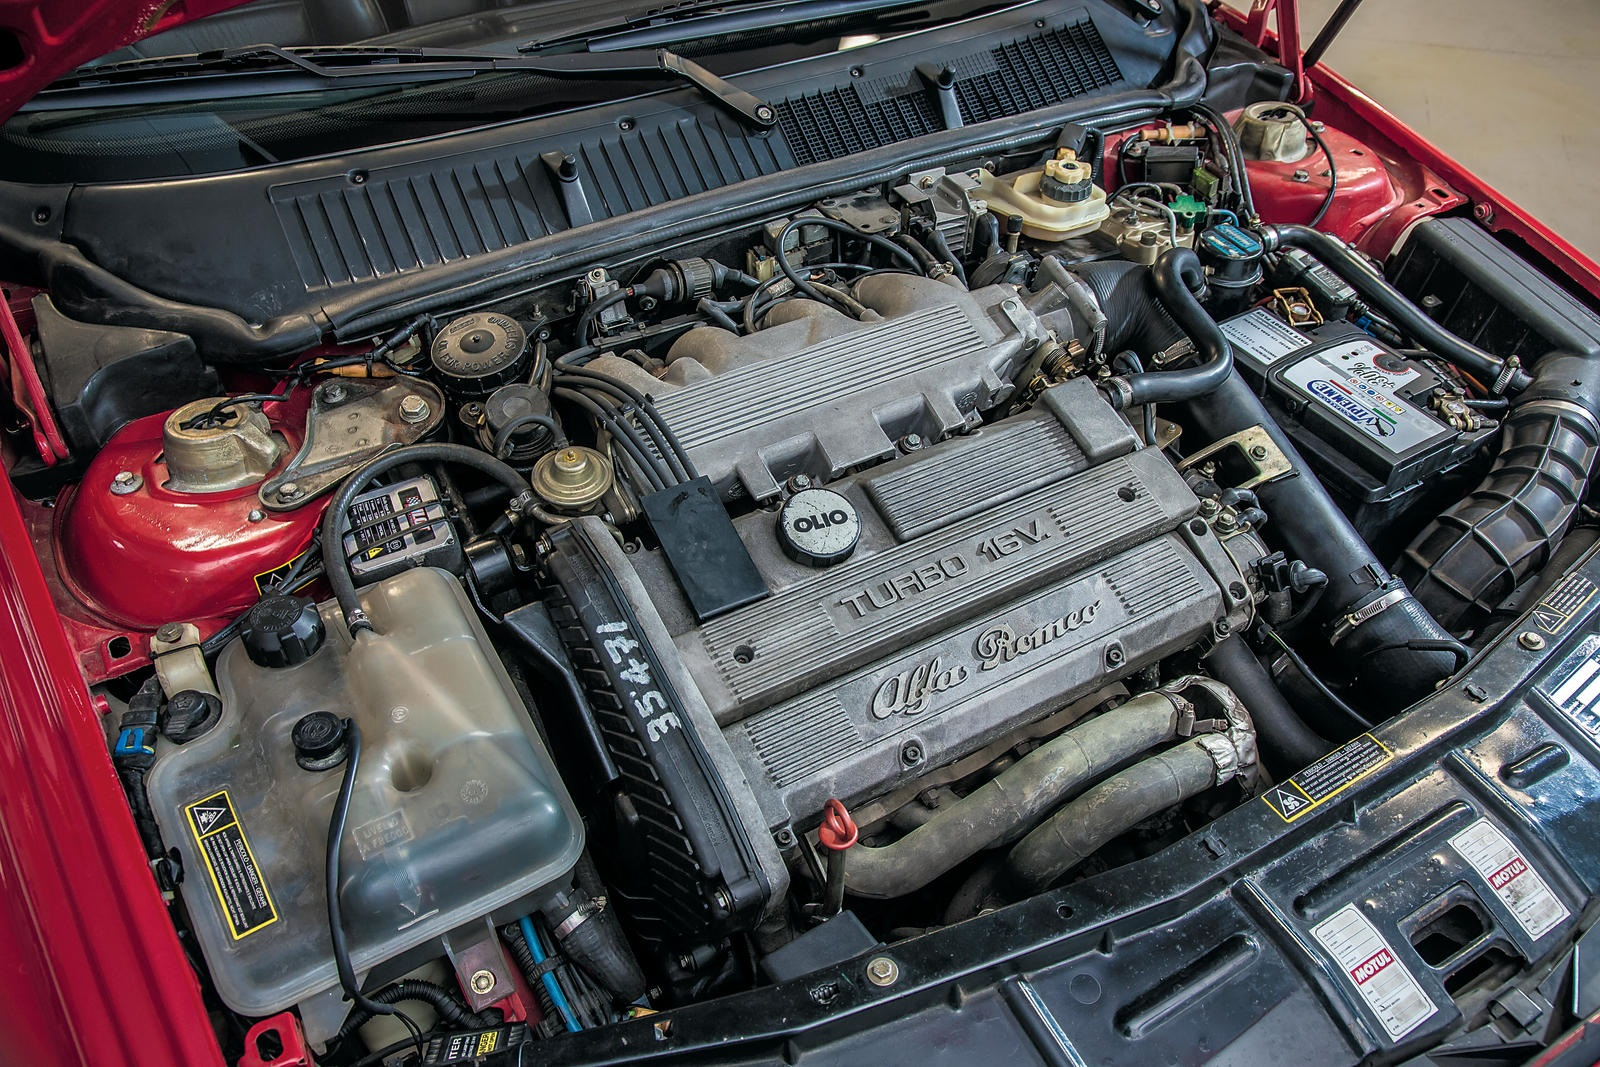 1993 Alfa Romeo 155 GTA Stradale Sports Saloon engine